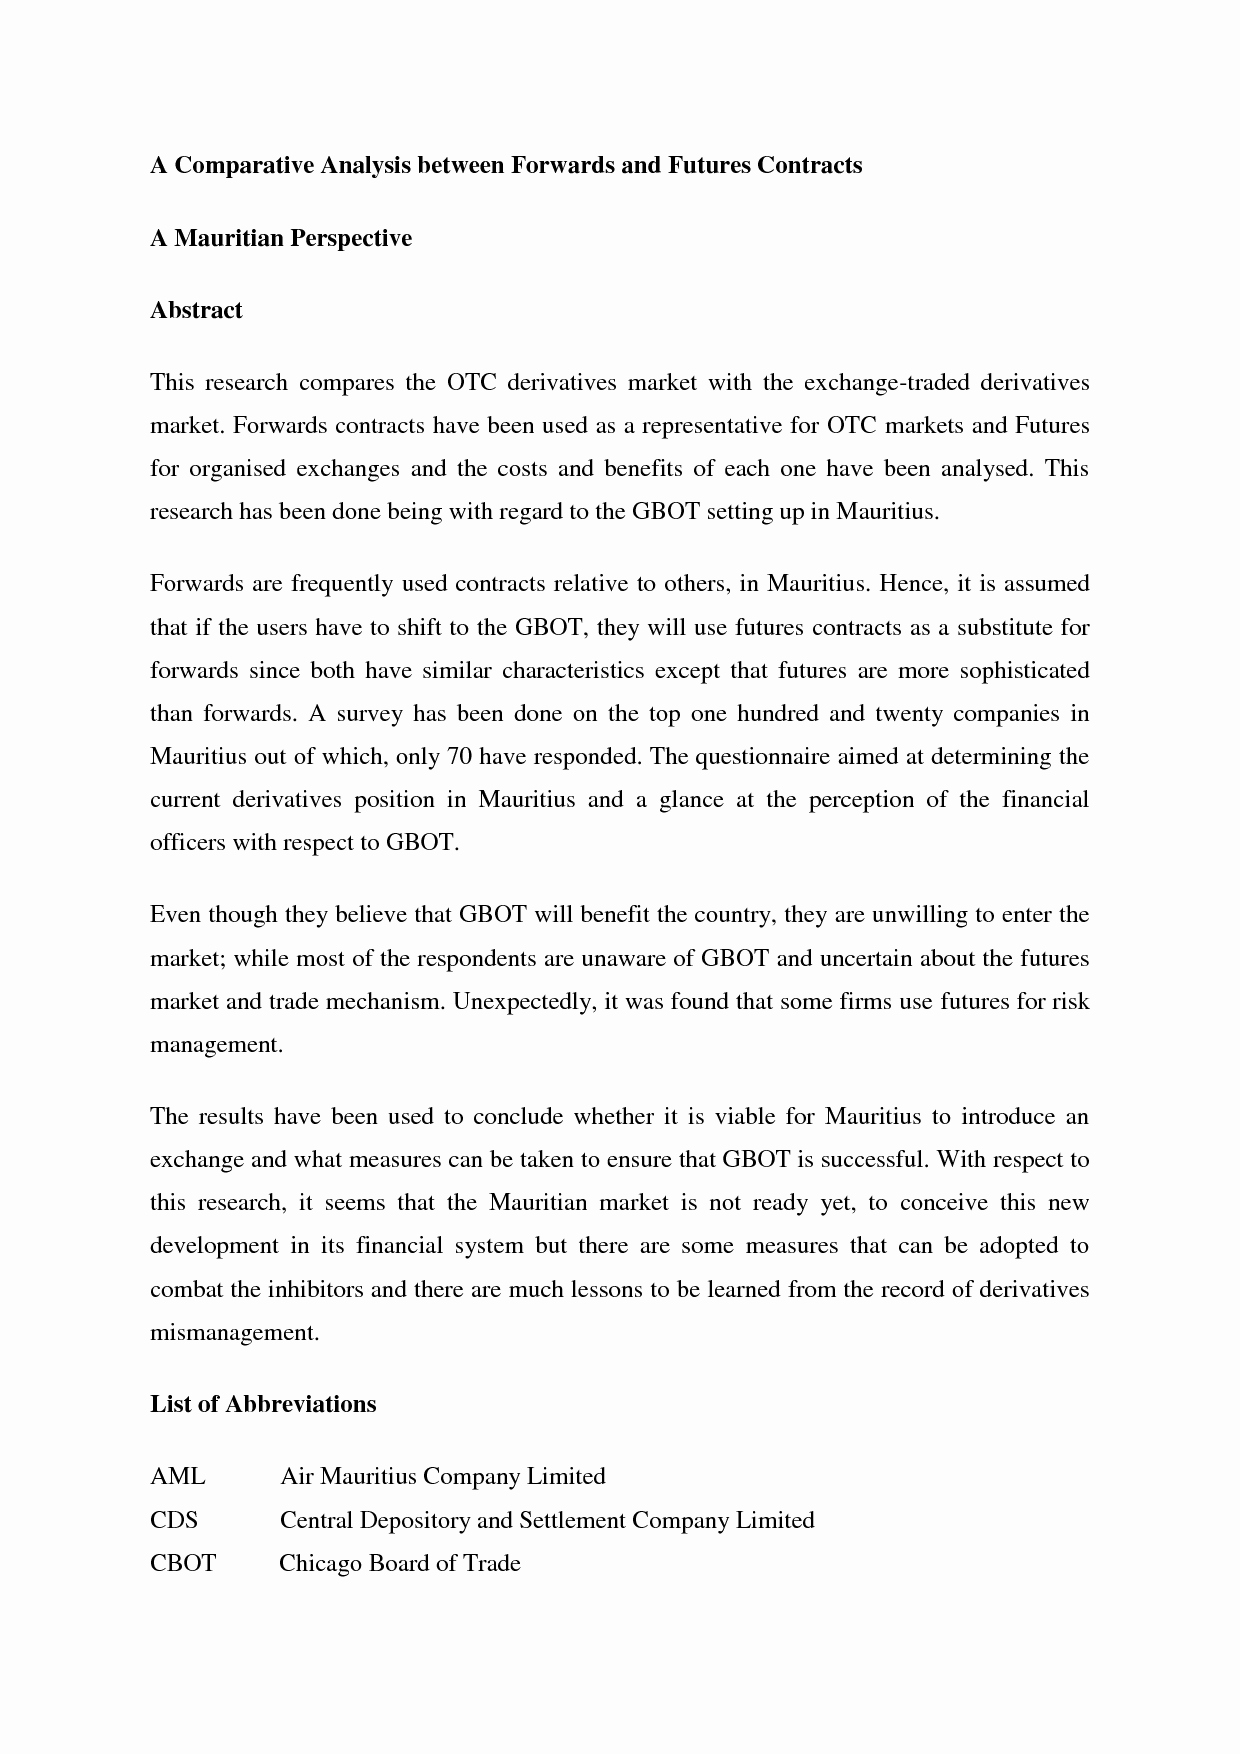 Agreement Letter Between Two Parties Template Inspirational 10 Best Of Contract Agreement Between Two Parties